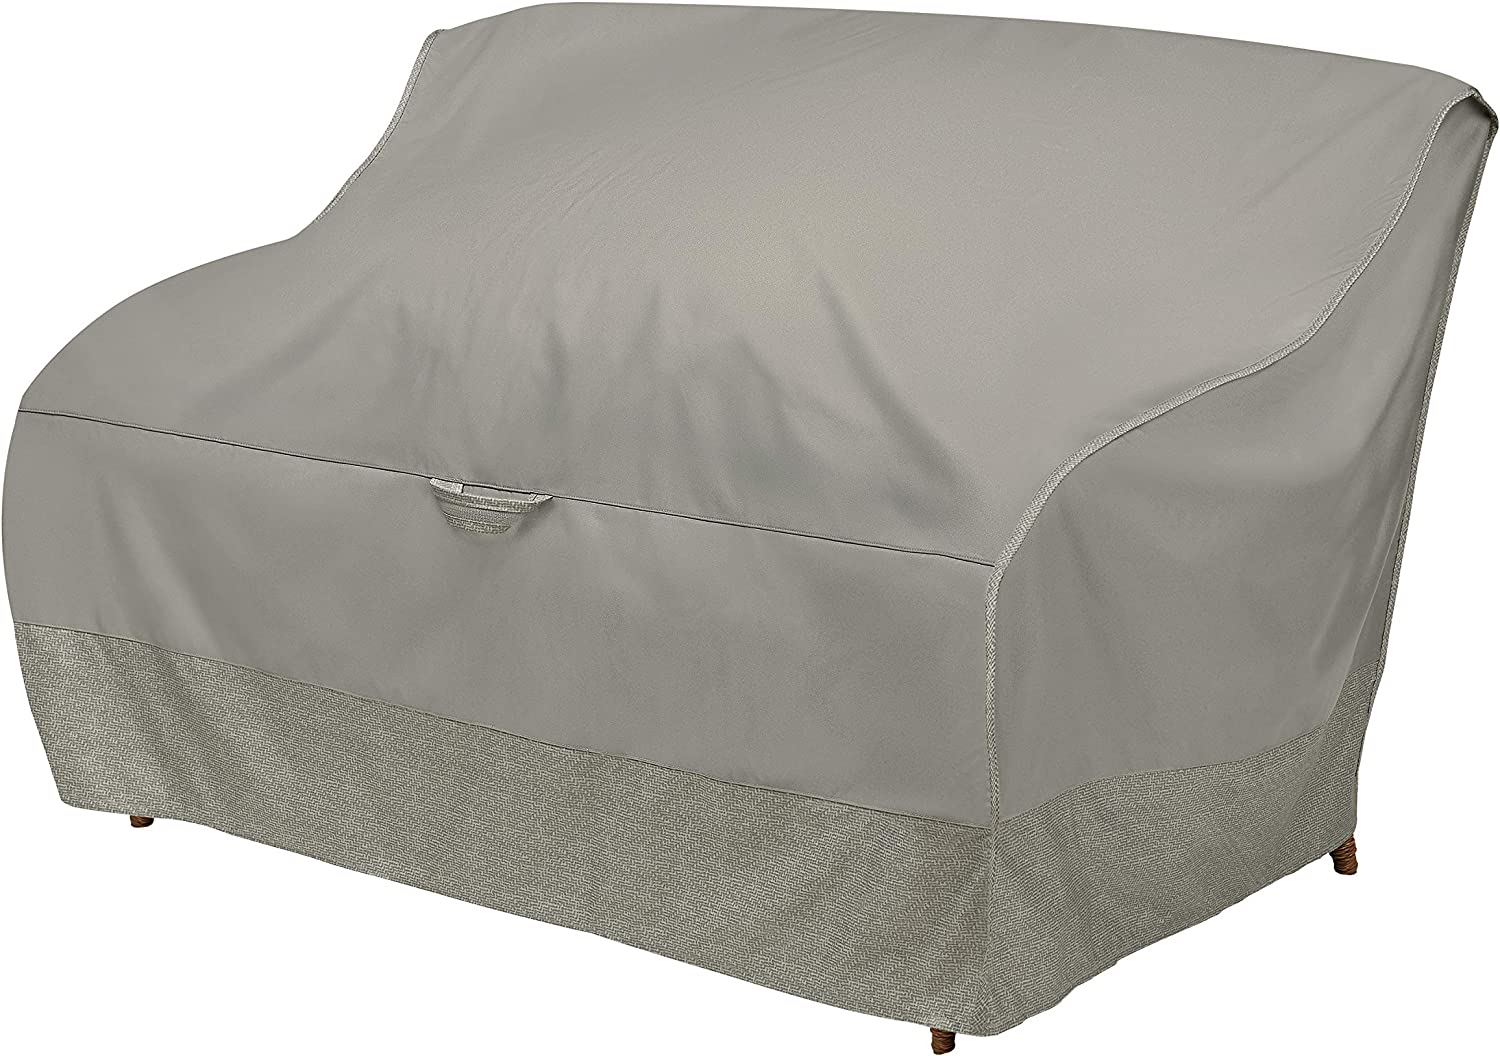 Duck Covers Weekend Water-Resistant 60 Inch Patio Loveseat Cover with Integrated Duck Dome, Moon Rock: Kitchen & Dining